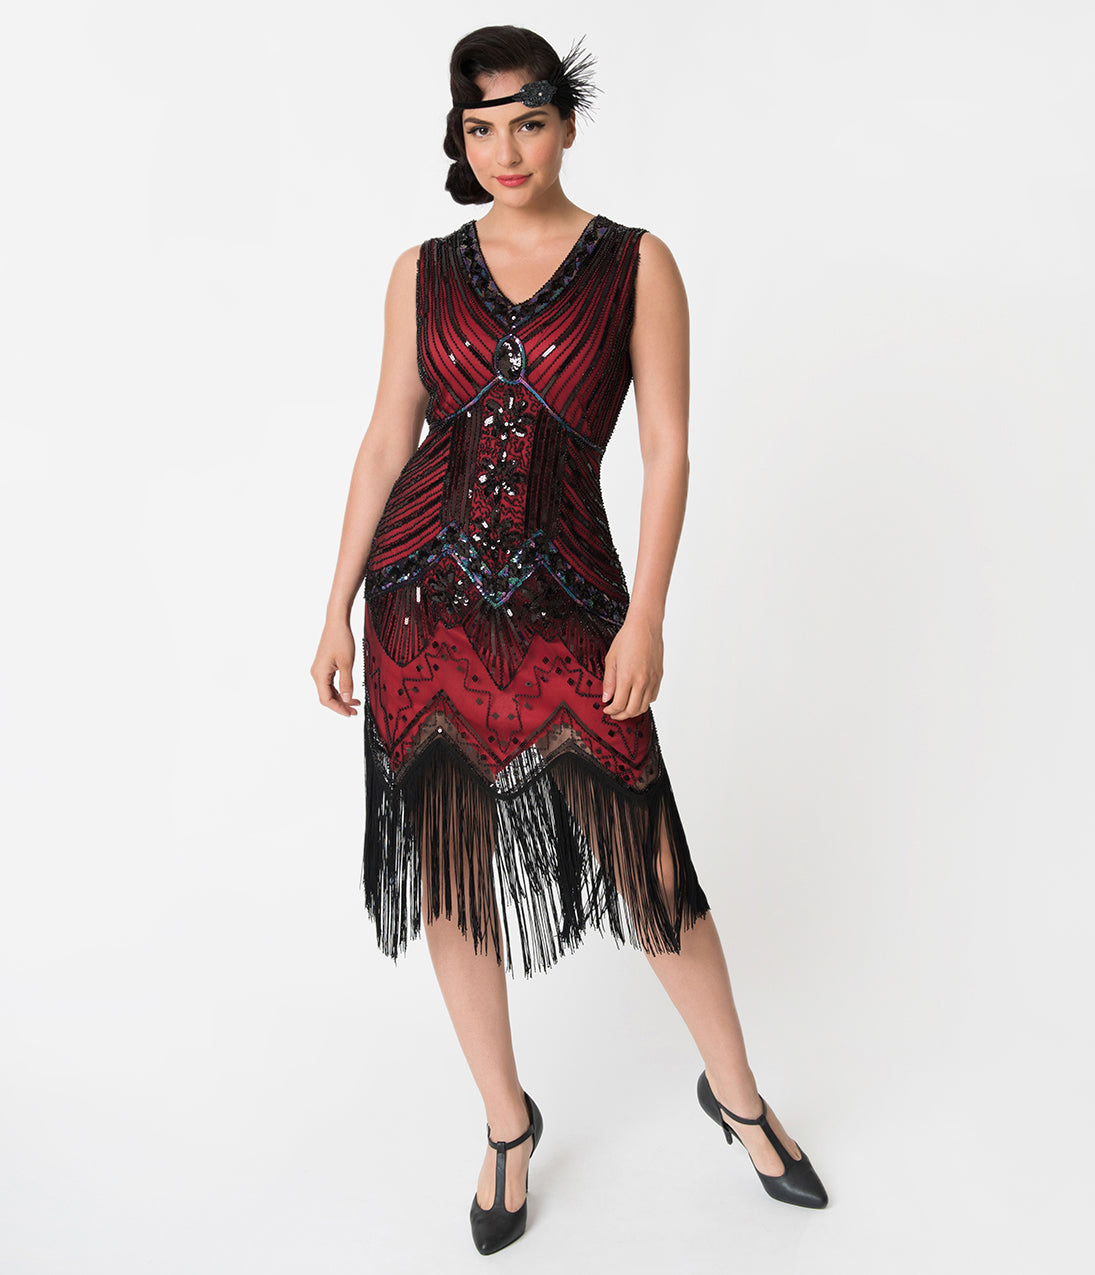 1920s Costumes: Flapper, Great Gatsby, Gangster Girl Unique Vintage 1920S Deco Red  Black Veronique Fringe Flapper Dress $98.00 AT vintagedancer.com